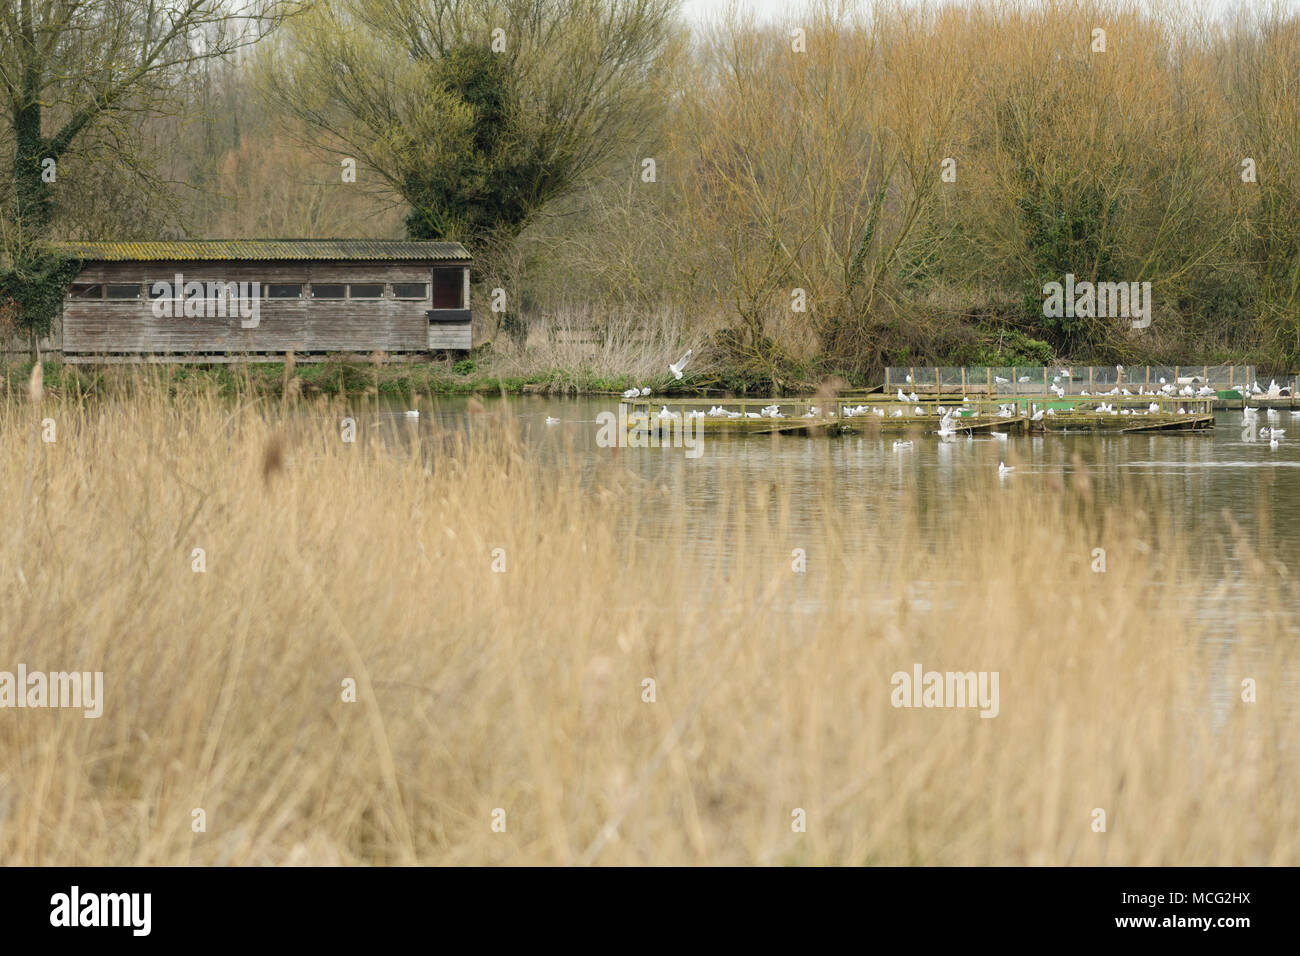 Birdwatching hide in Rye Meads nature reserve, Hoddesdon, Engalnd - Stock Image